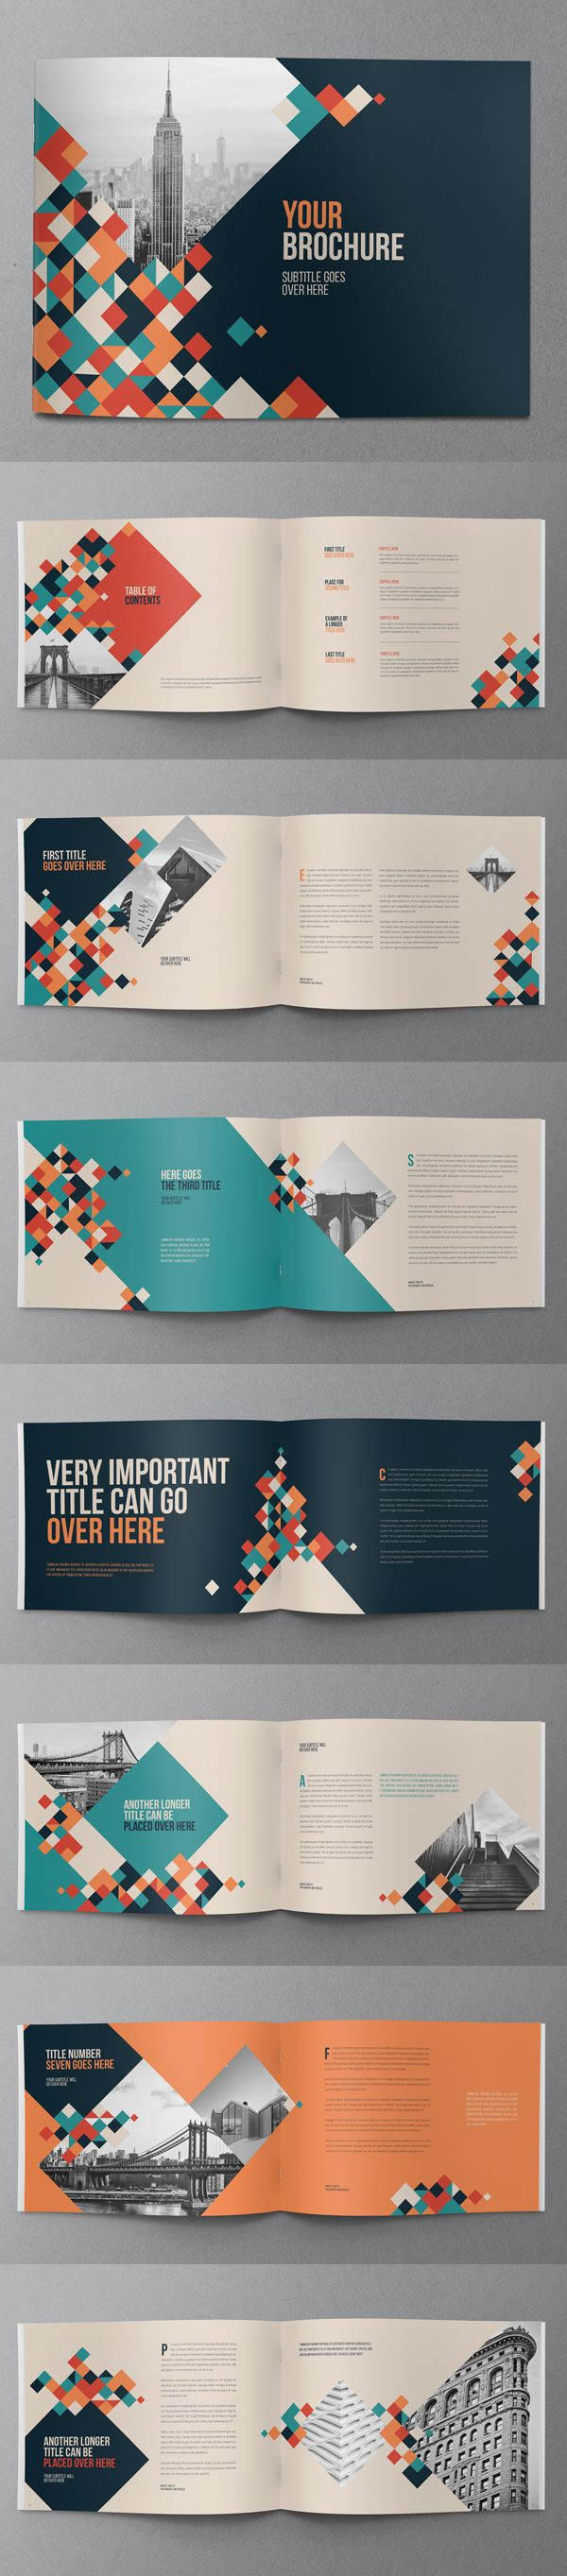 creative colorful squares brochure design booklet brochuredesign - Booklet Design Ideas